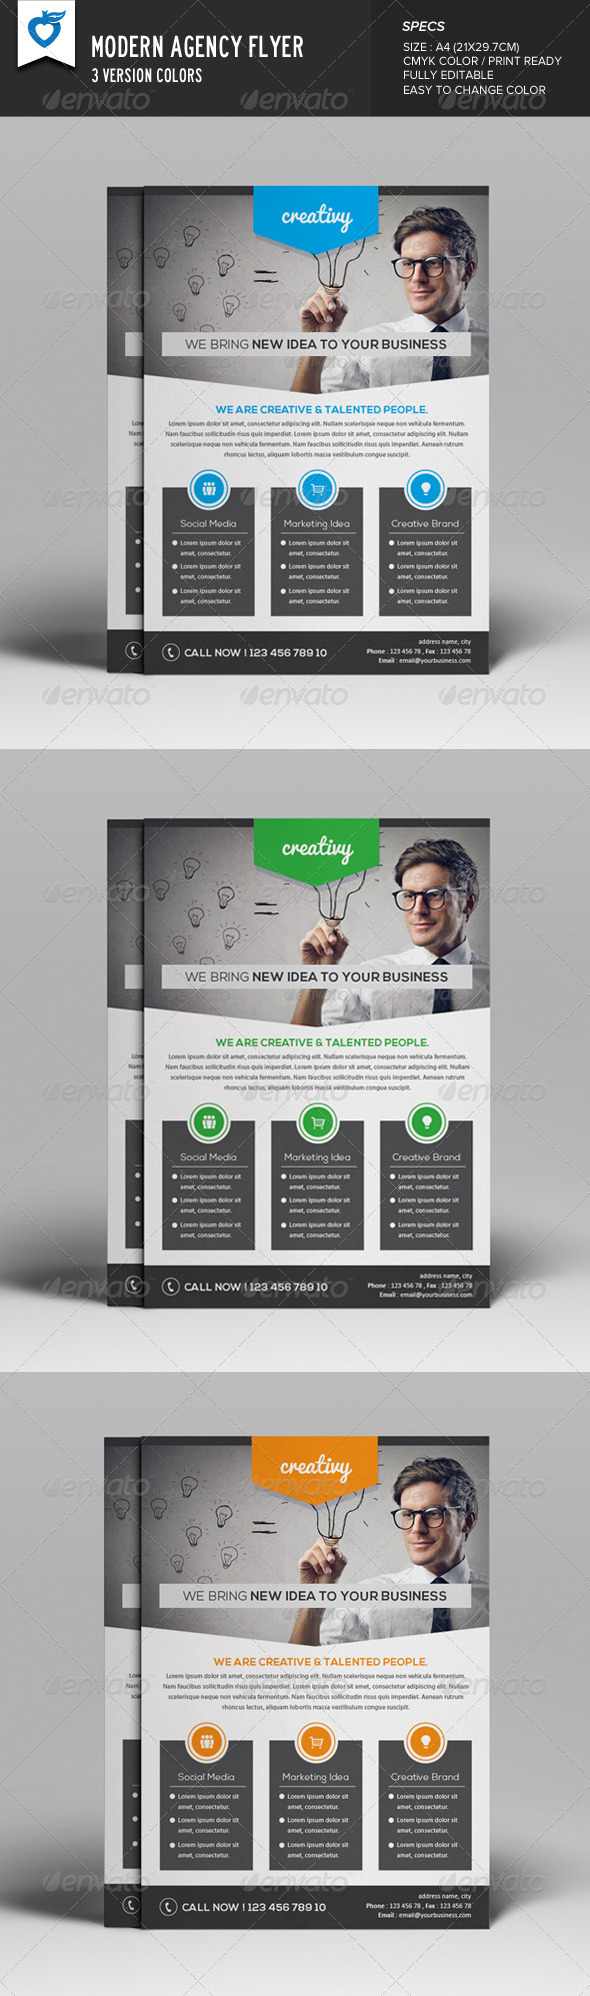 GraphicRiver Modern Agency Flyer 8173317